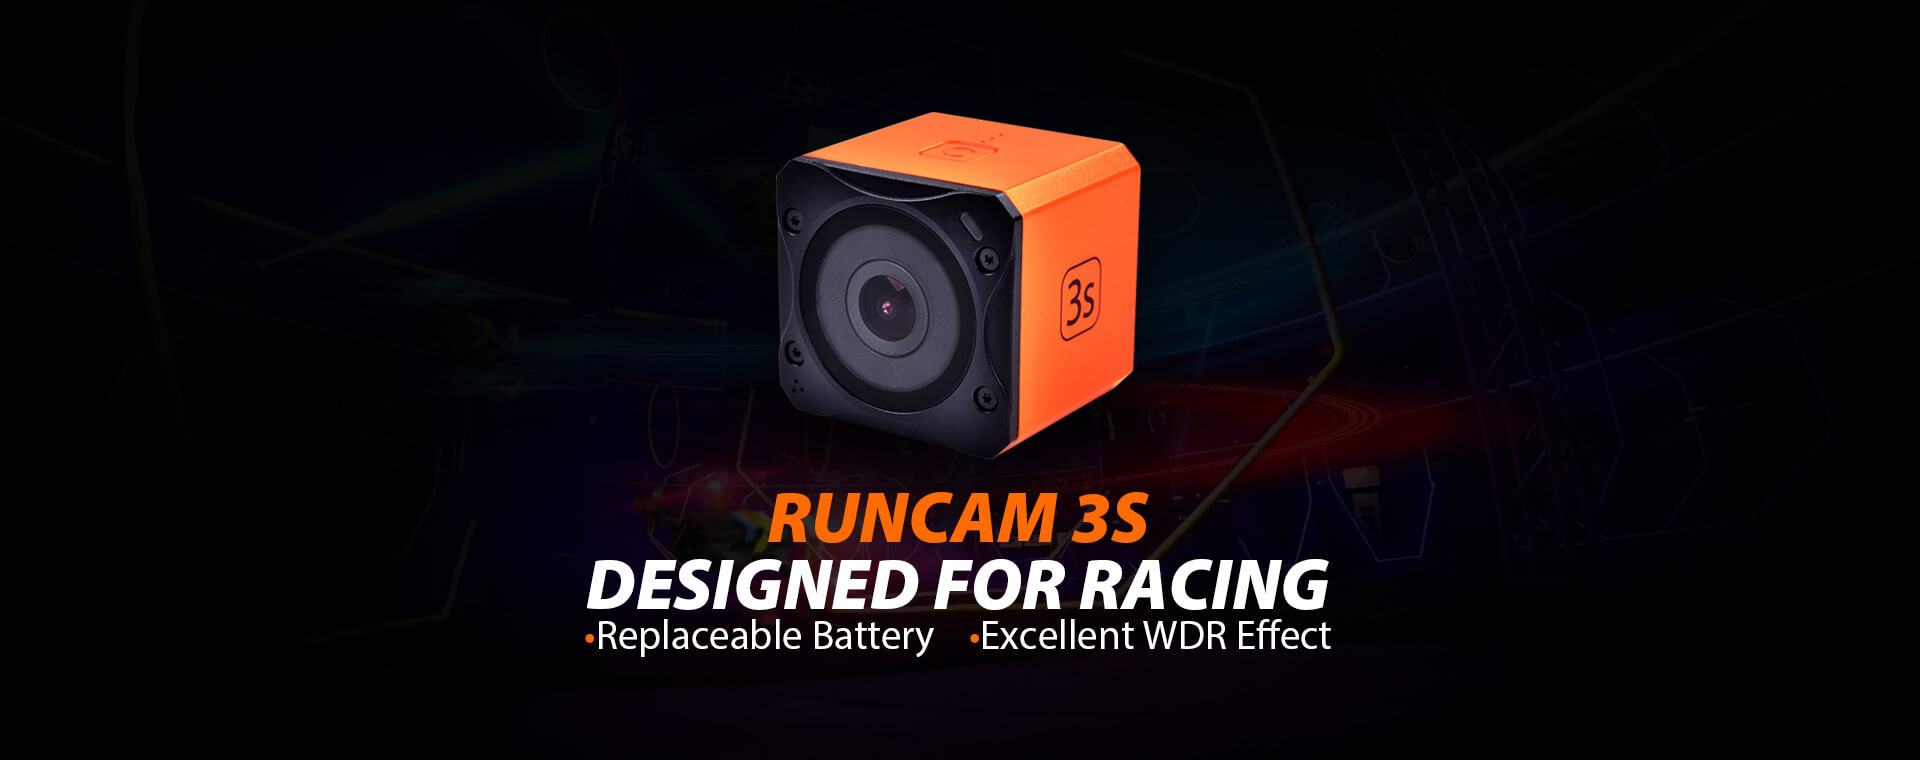 RunCam 3S HD Wide Angle FPV Action Camera (1080p / 60fps)